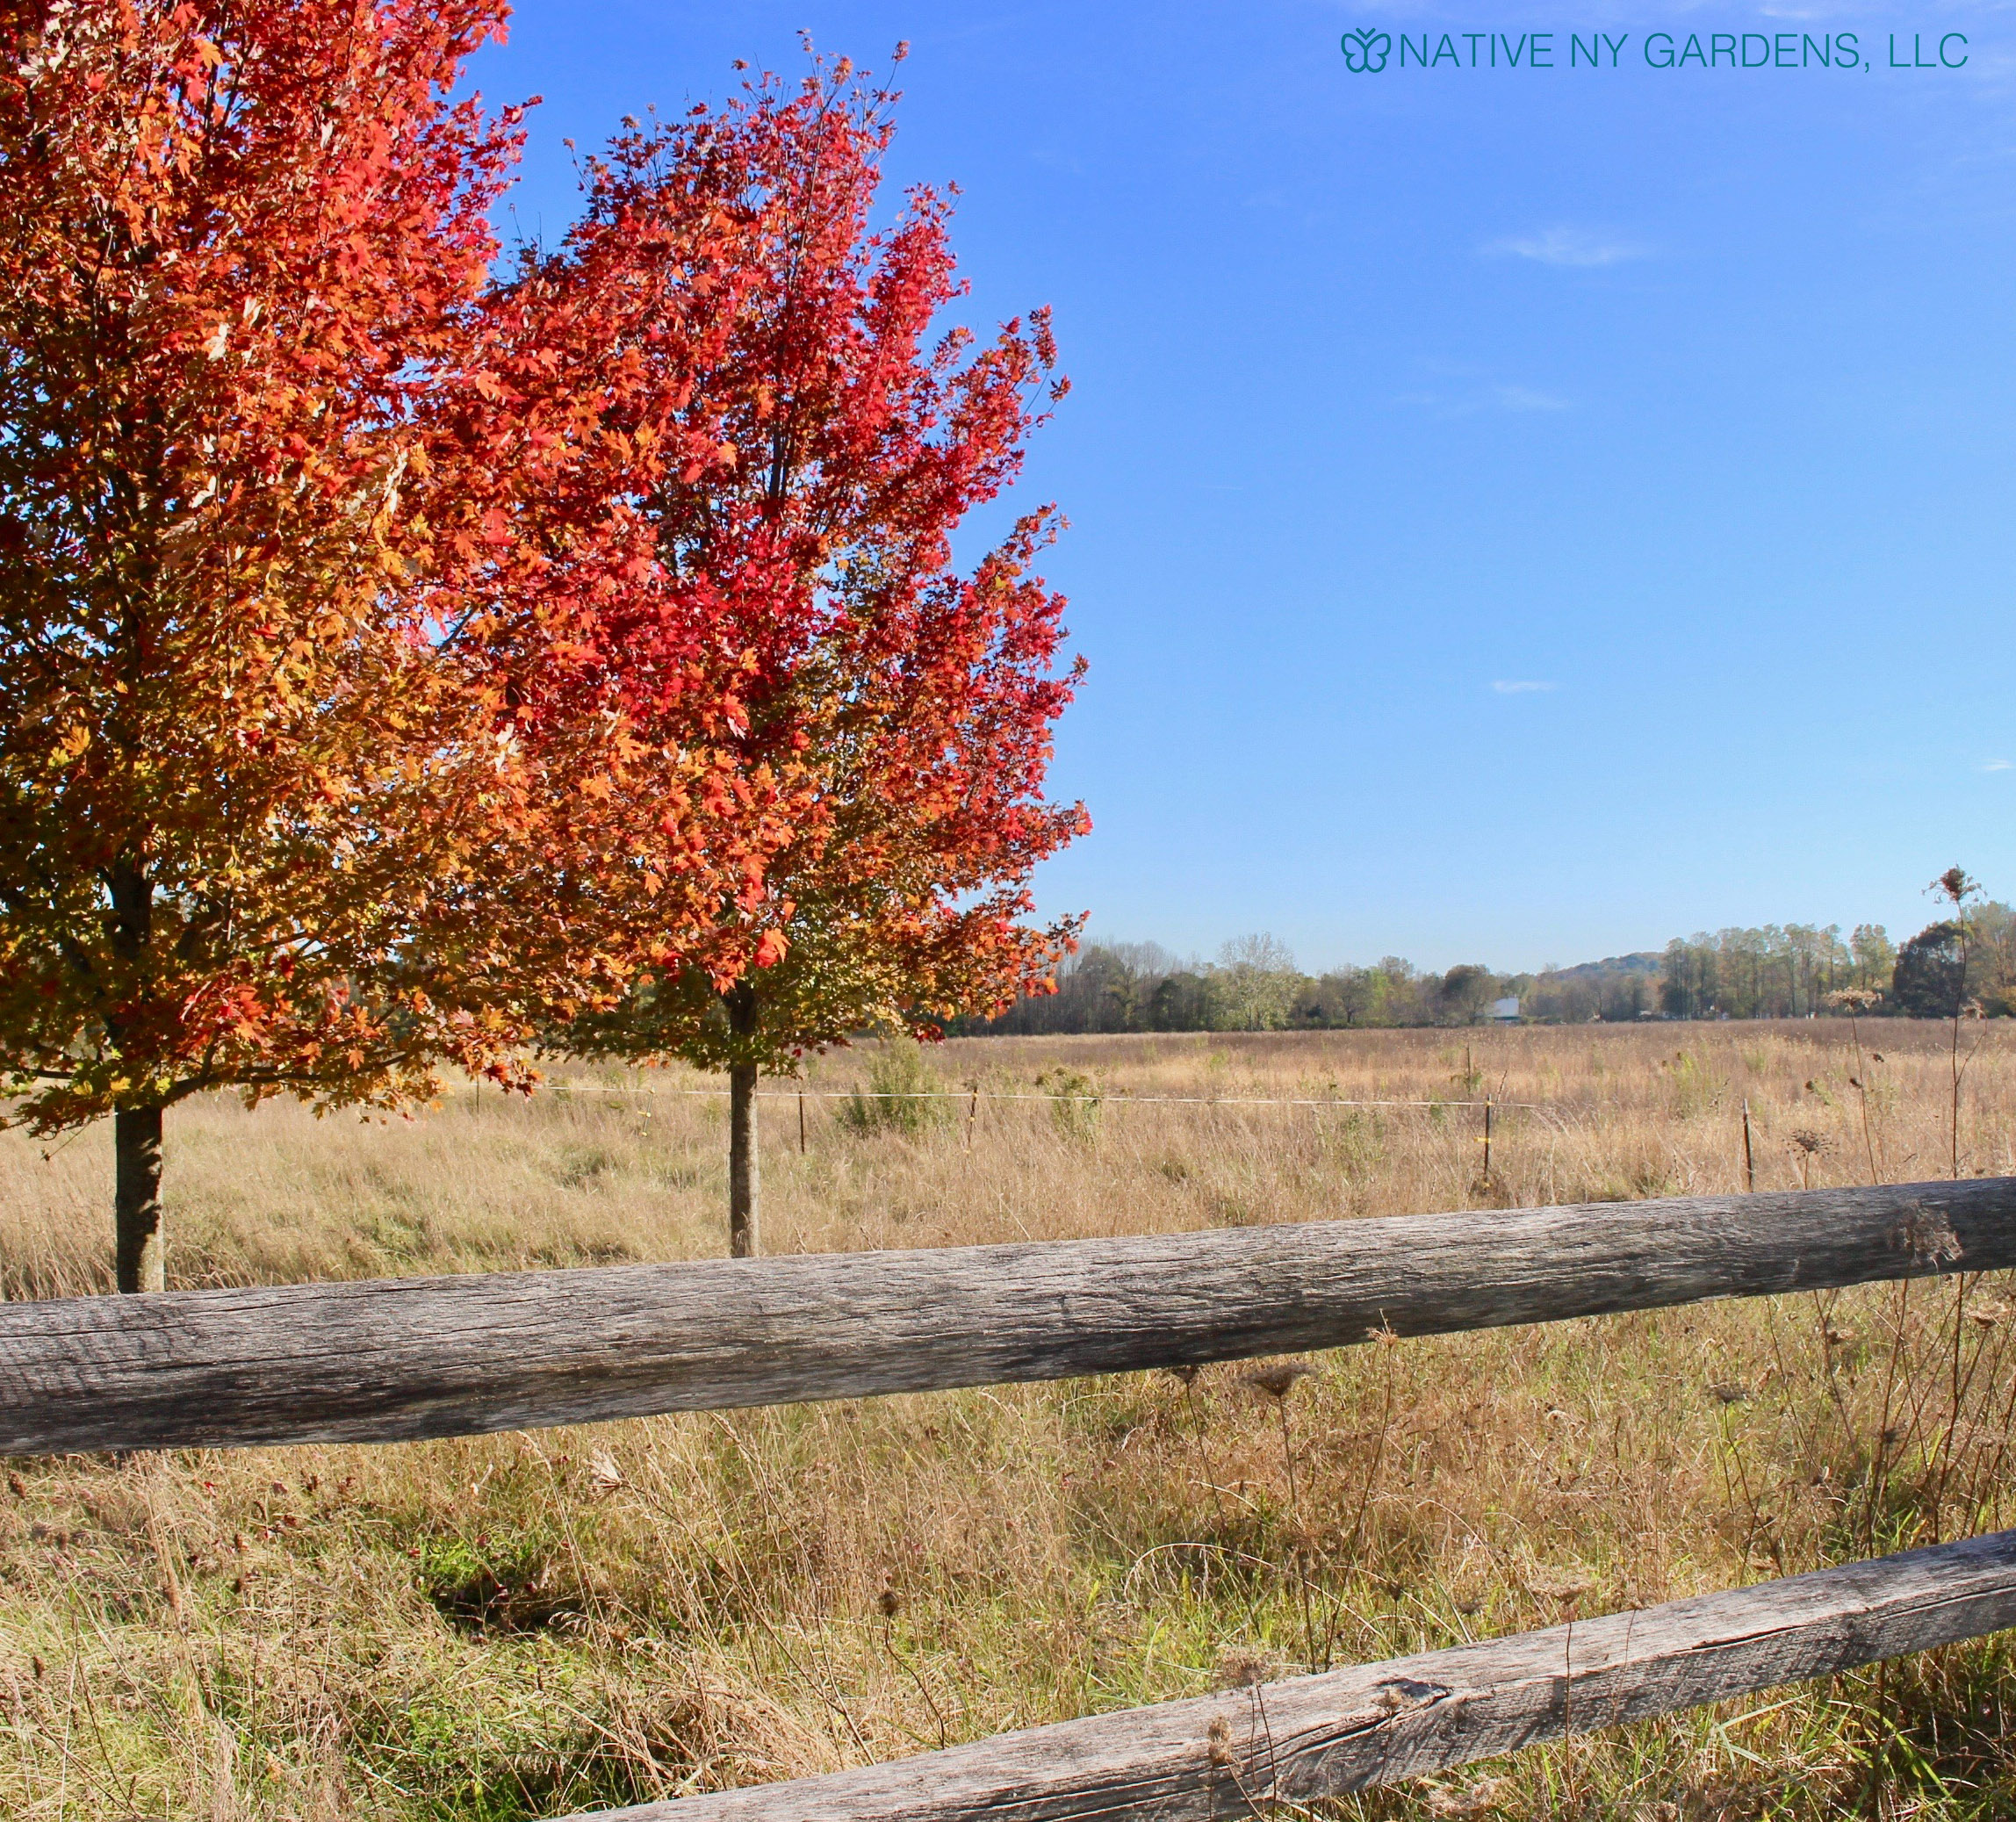 Photo by: Mackenzie Younger 'October Glory' Red maple cultivar on upstate New York farm